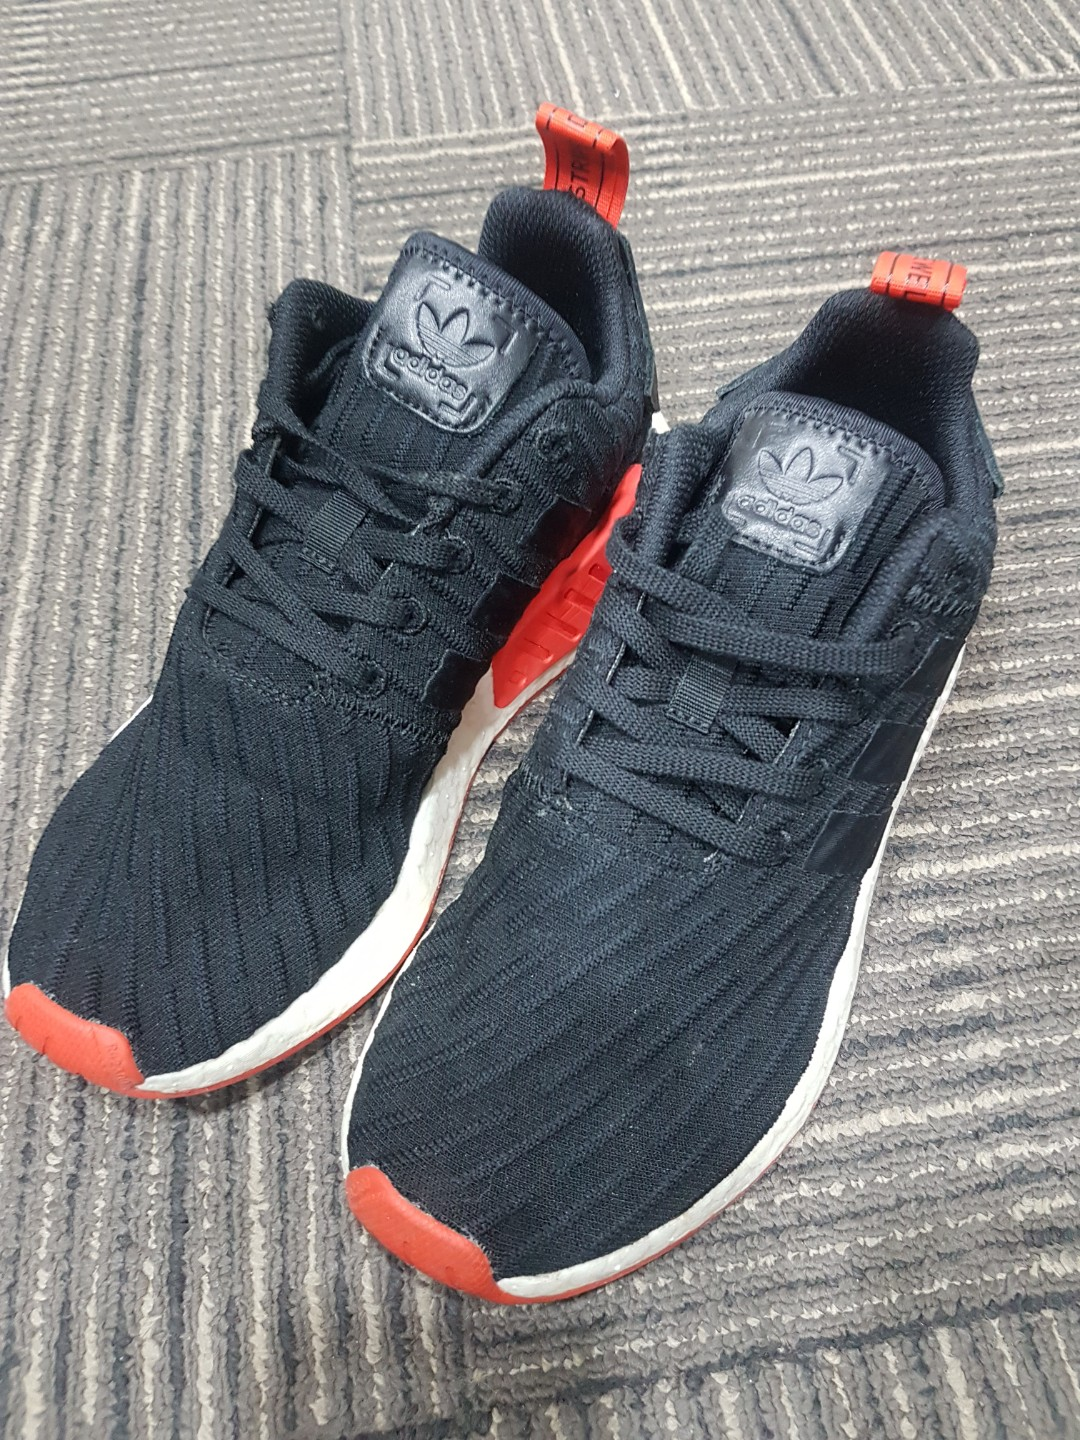 huge discount a0e73 31cba Adidas NMD R2 Red Black